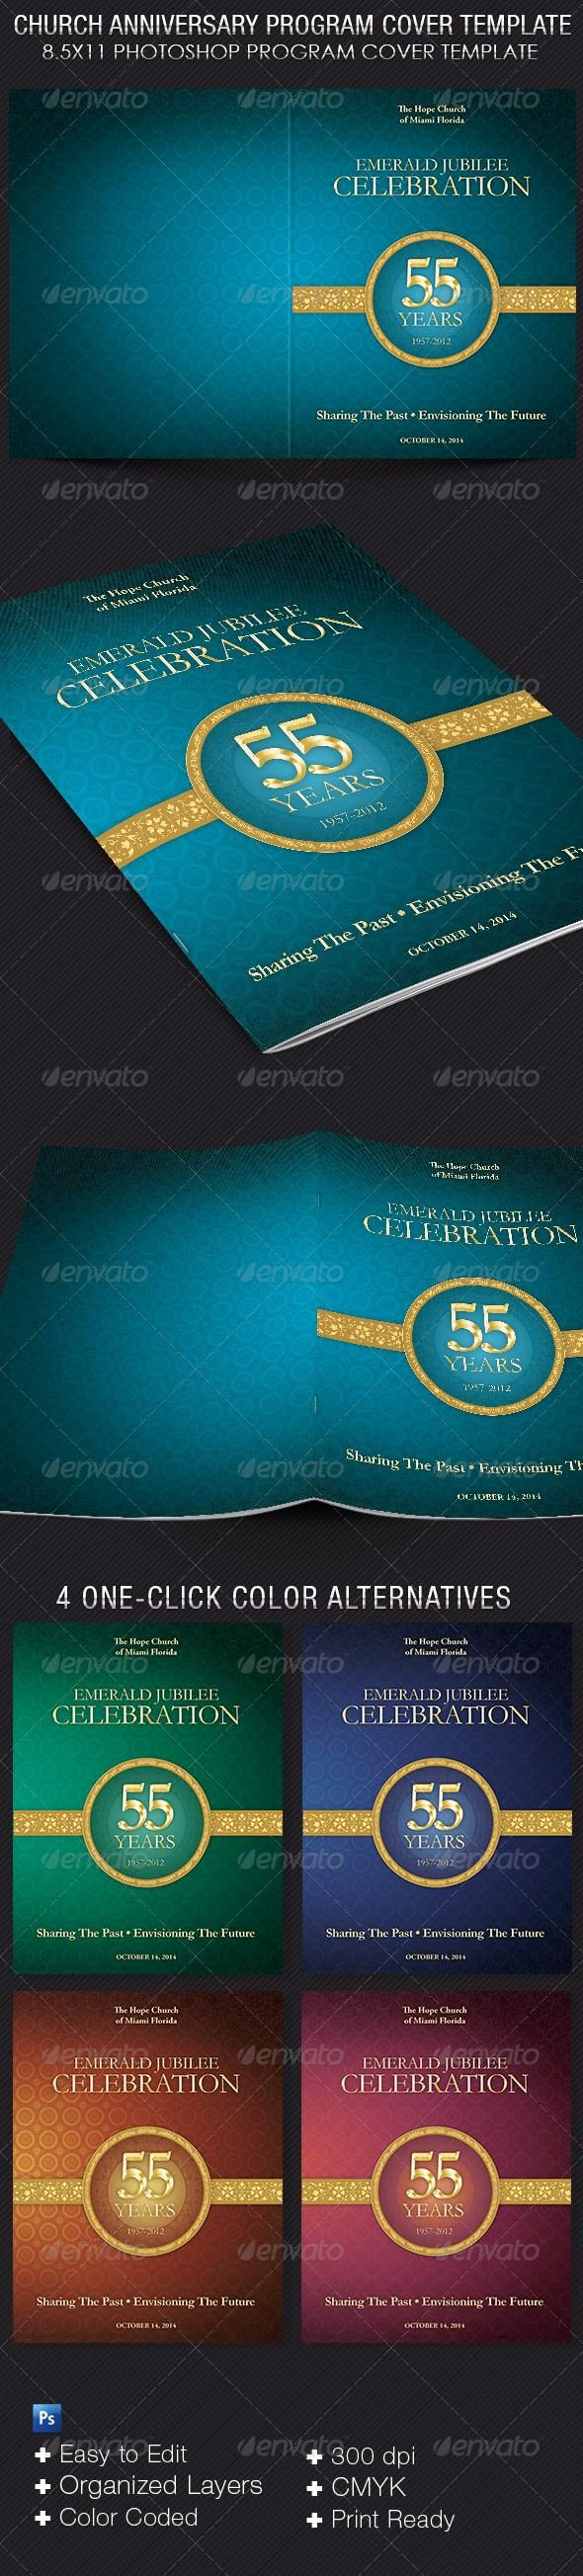 Church Anniversary Program Template New 17 Best Images About 20th Anniversary Logo Ideas On